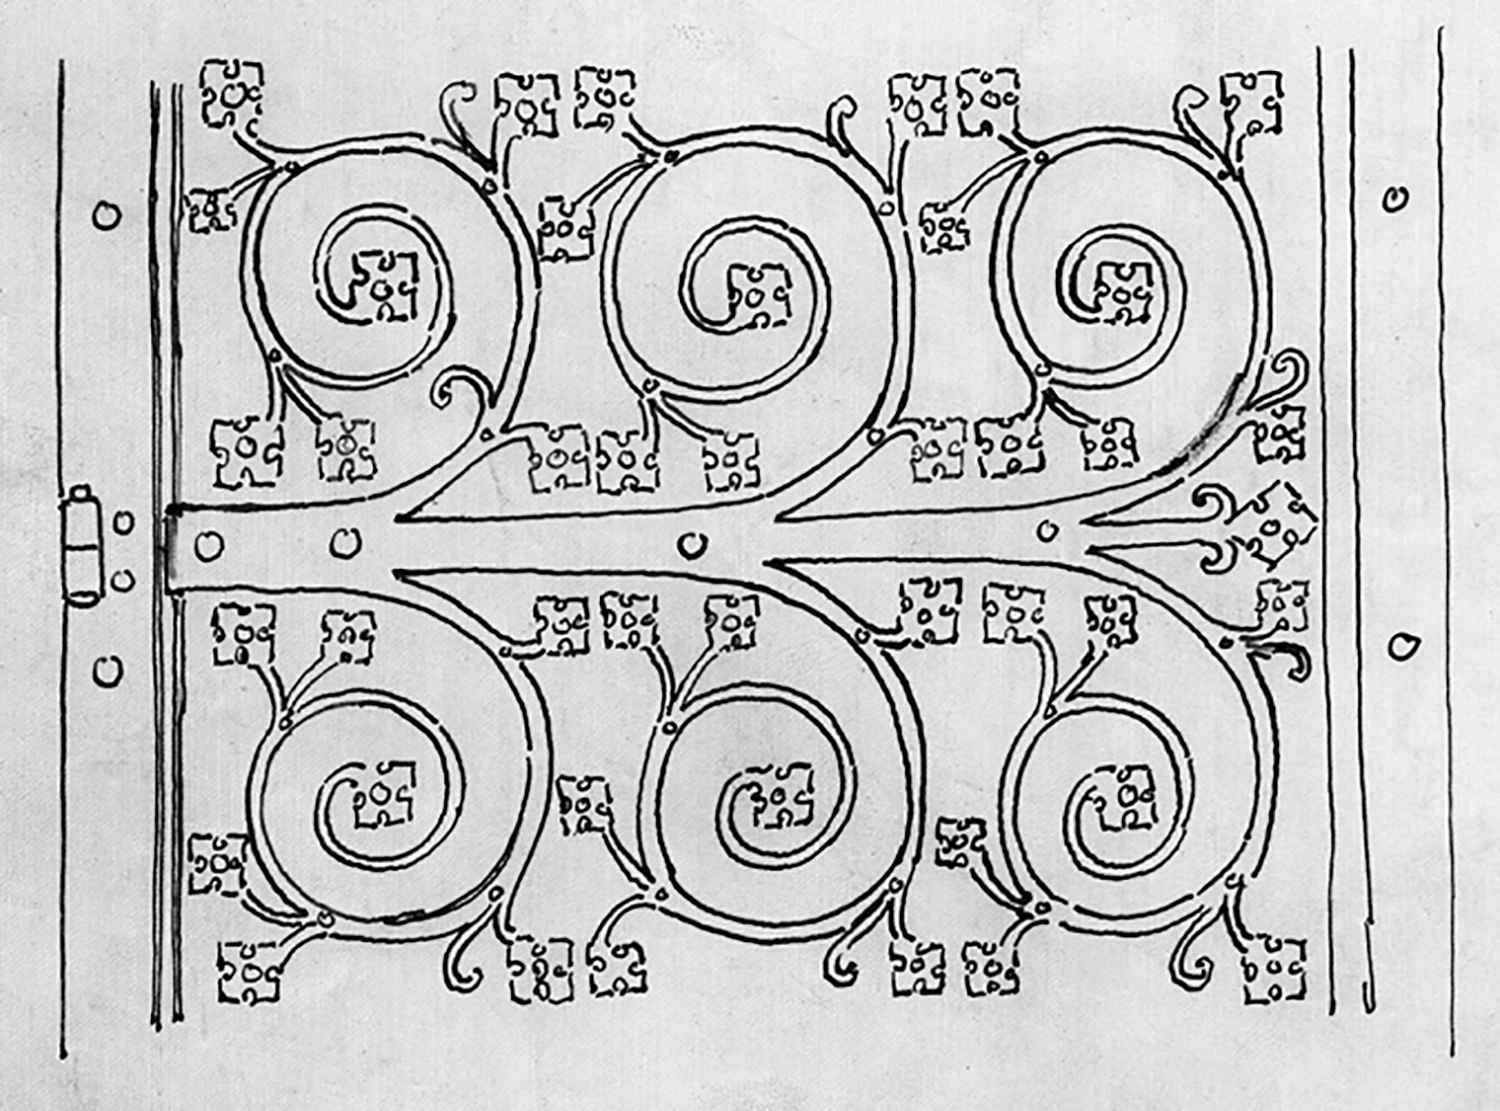 Figure 10: A preliminary design concept for a hinge by Parke Edwards, the principal metalwork designer for Bryn Athyn Cathedral. This particular design is only one on a page containing several design ideas for the Cathedral's west door. It was signed and dated by Edwards on March 16, 1917.